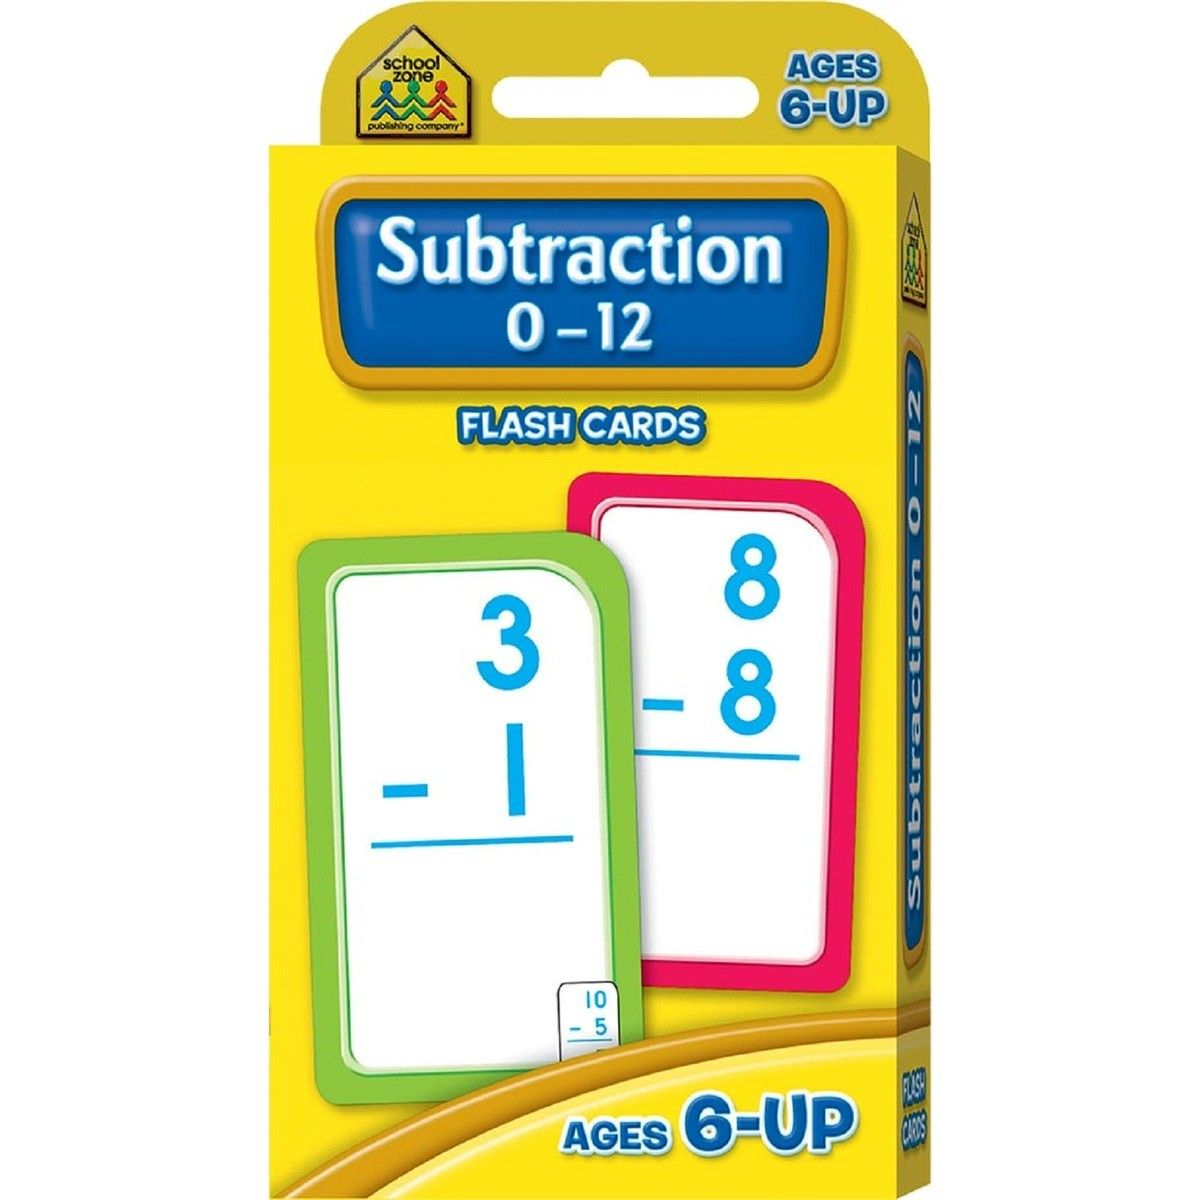 School Zone Subtraction 0-12 Flash Cards | Flashcards